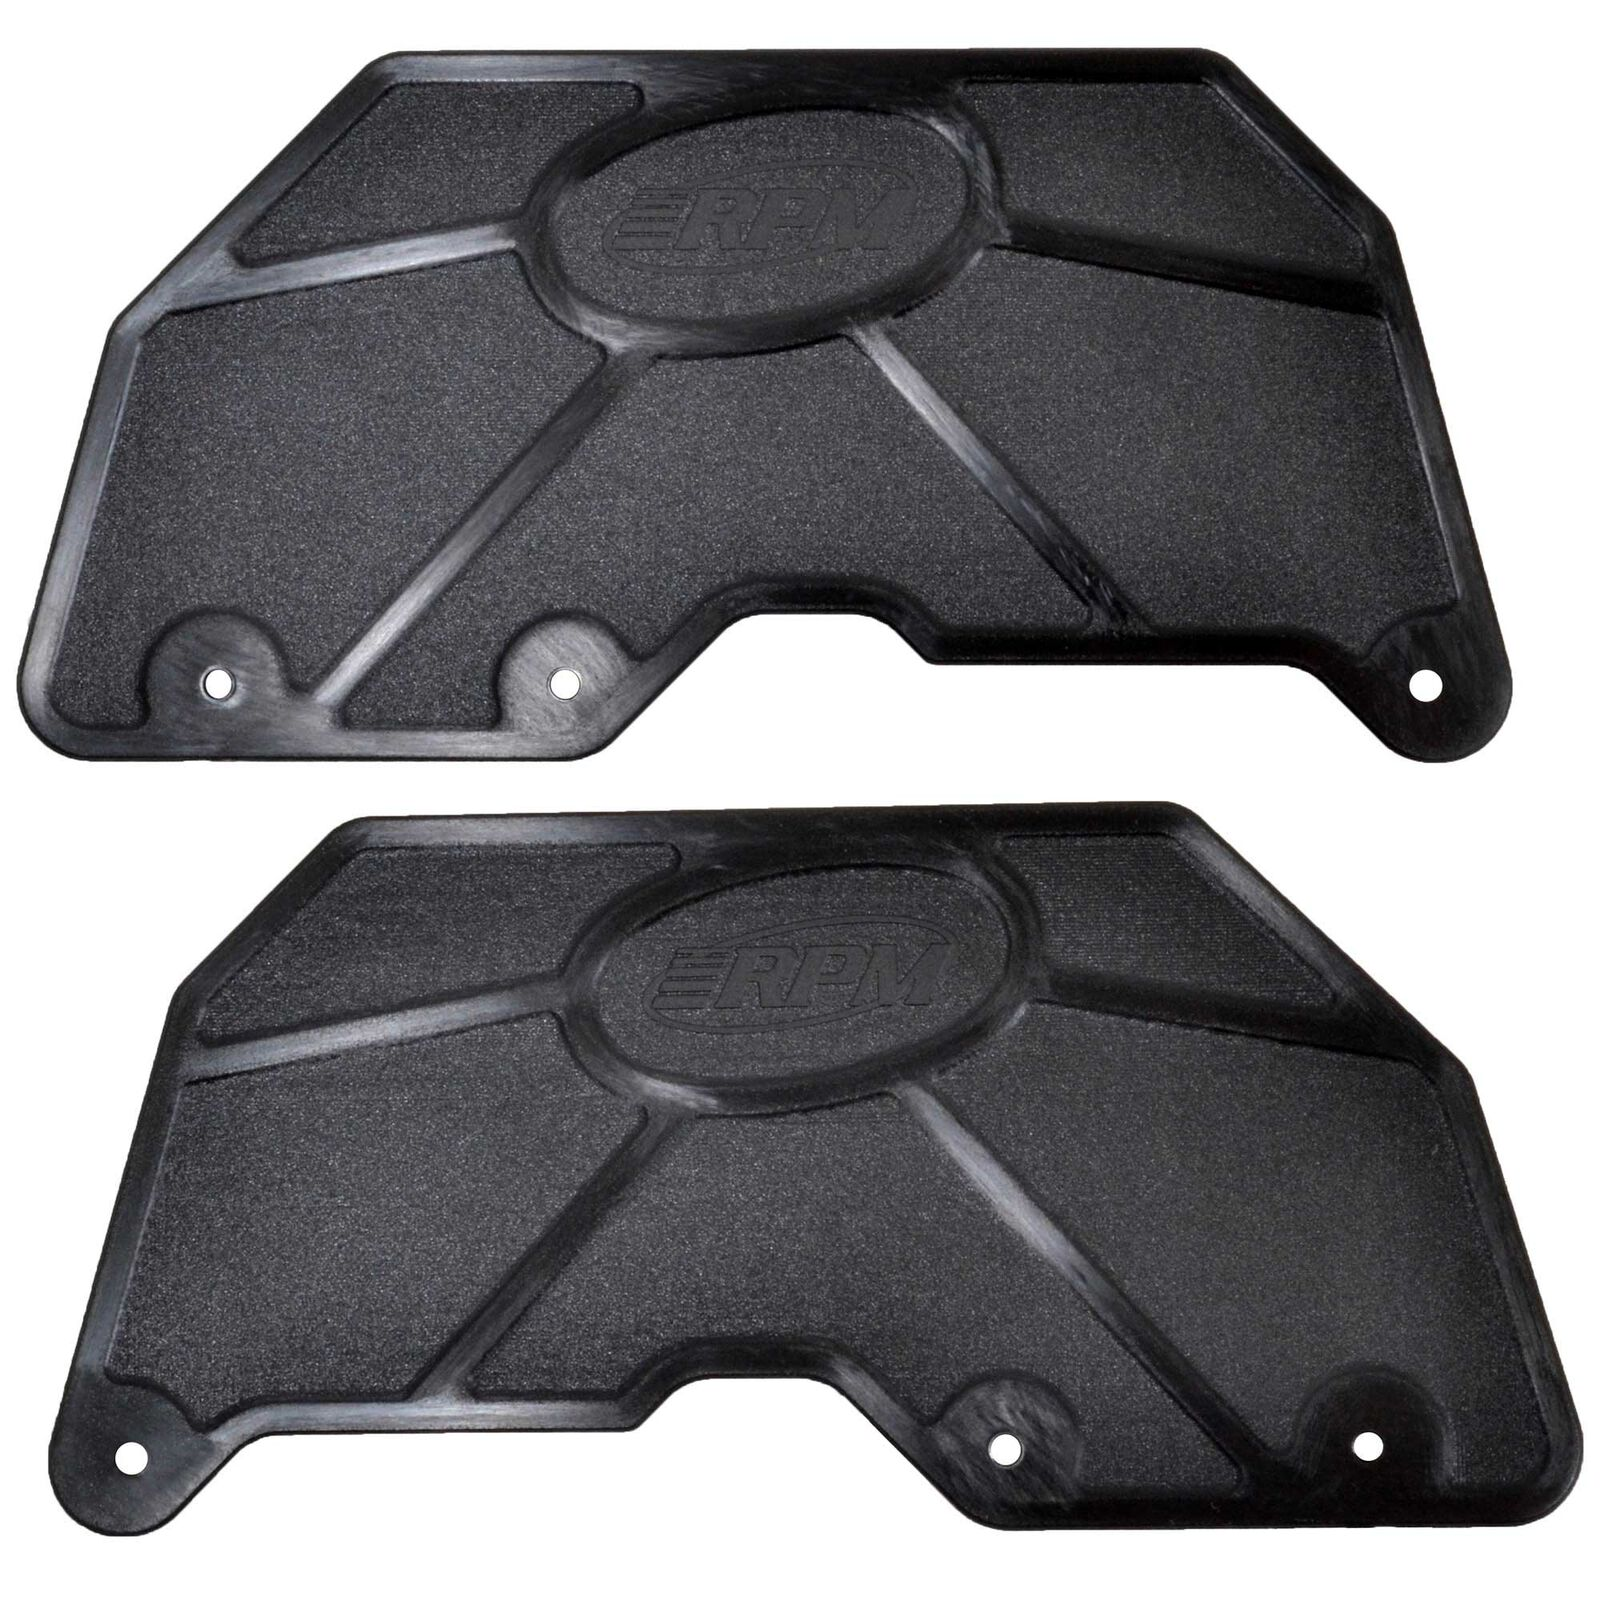 Mud Guards for RPM Kraton 8S Rear A-arms